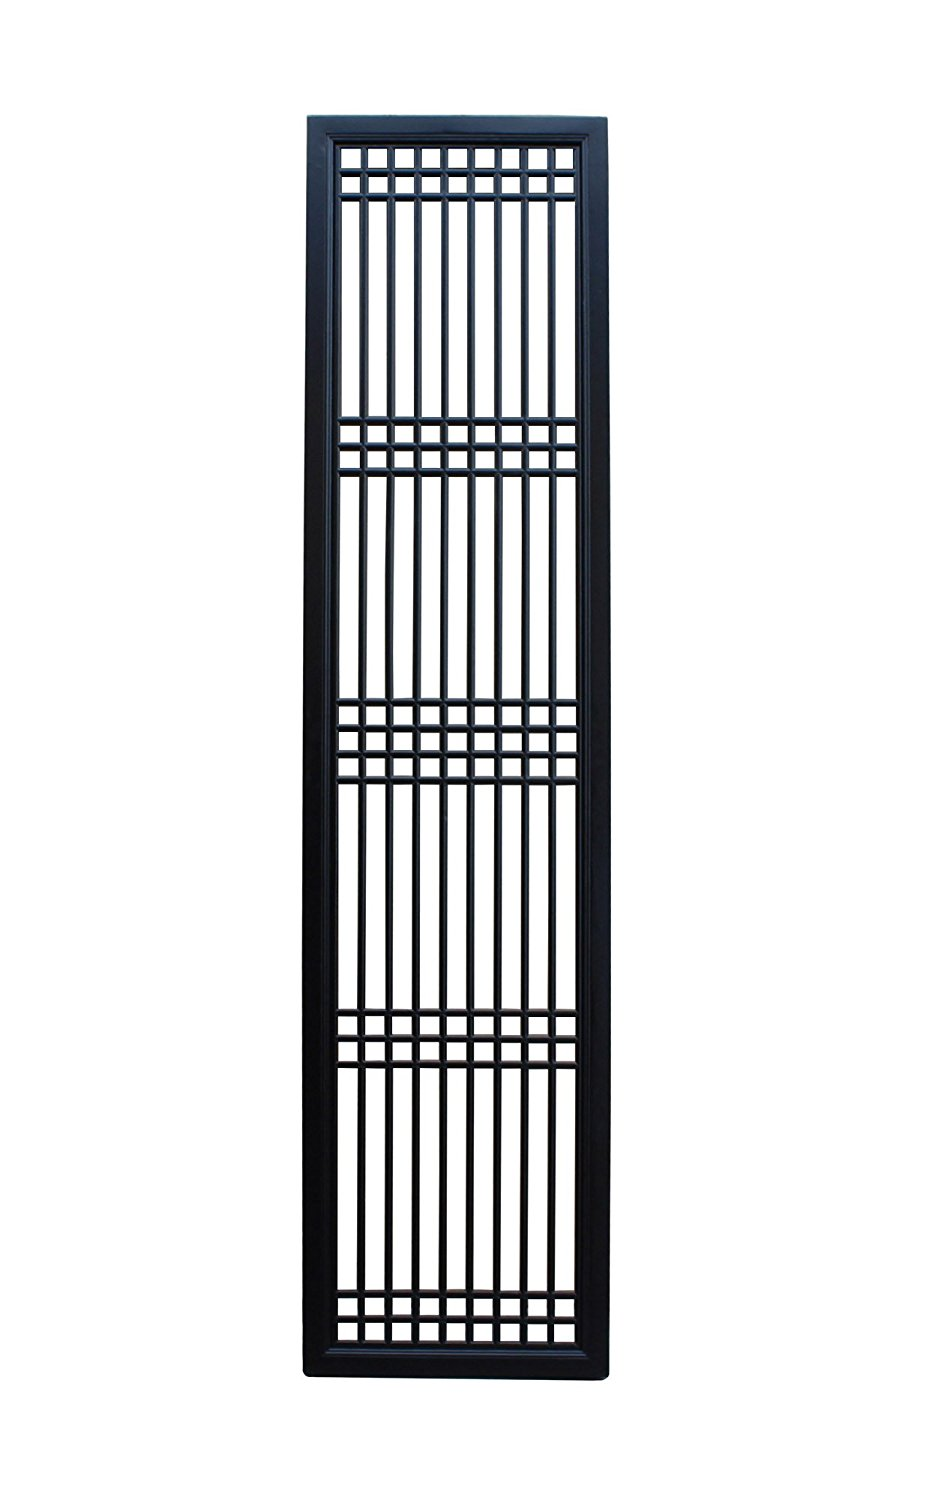 Cheap 30 Wood Screen Door Find 30 Wood Screen Door Deals On Line At